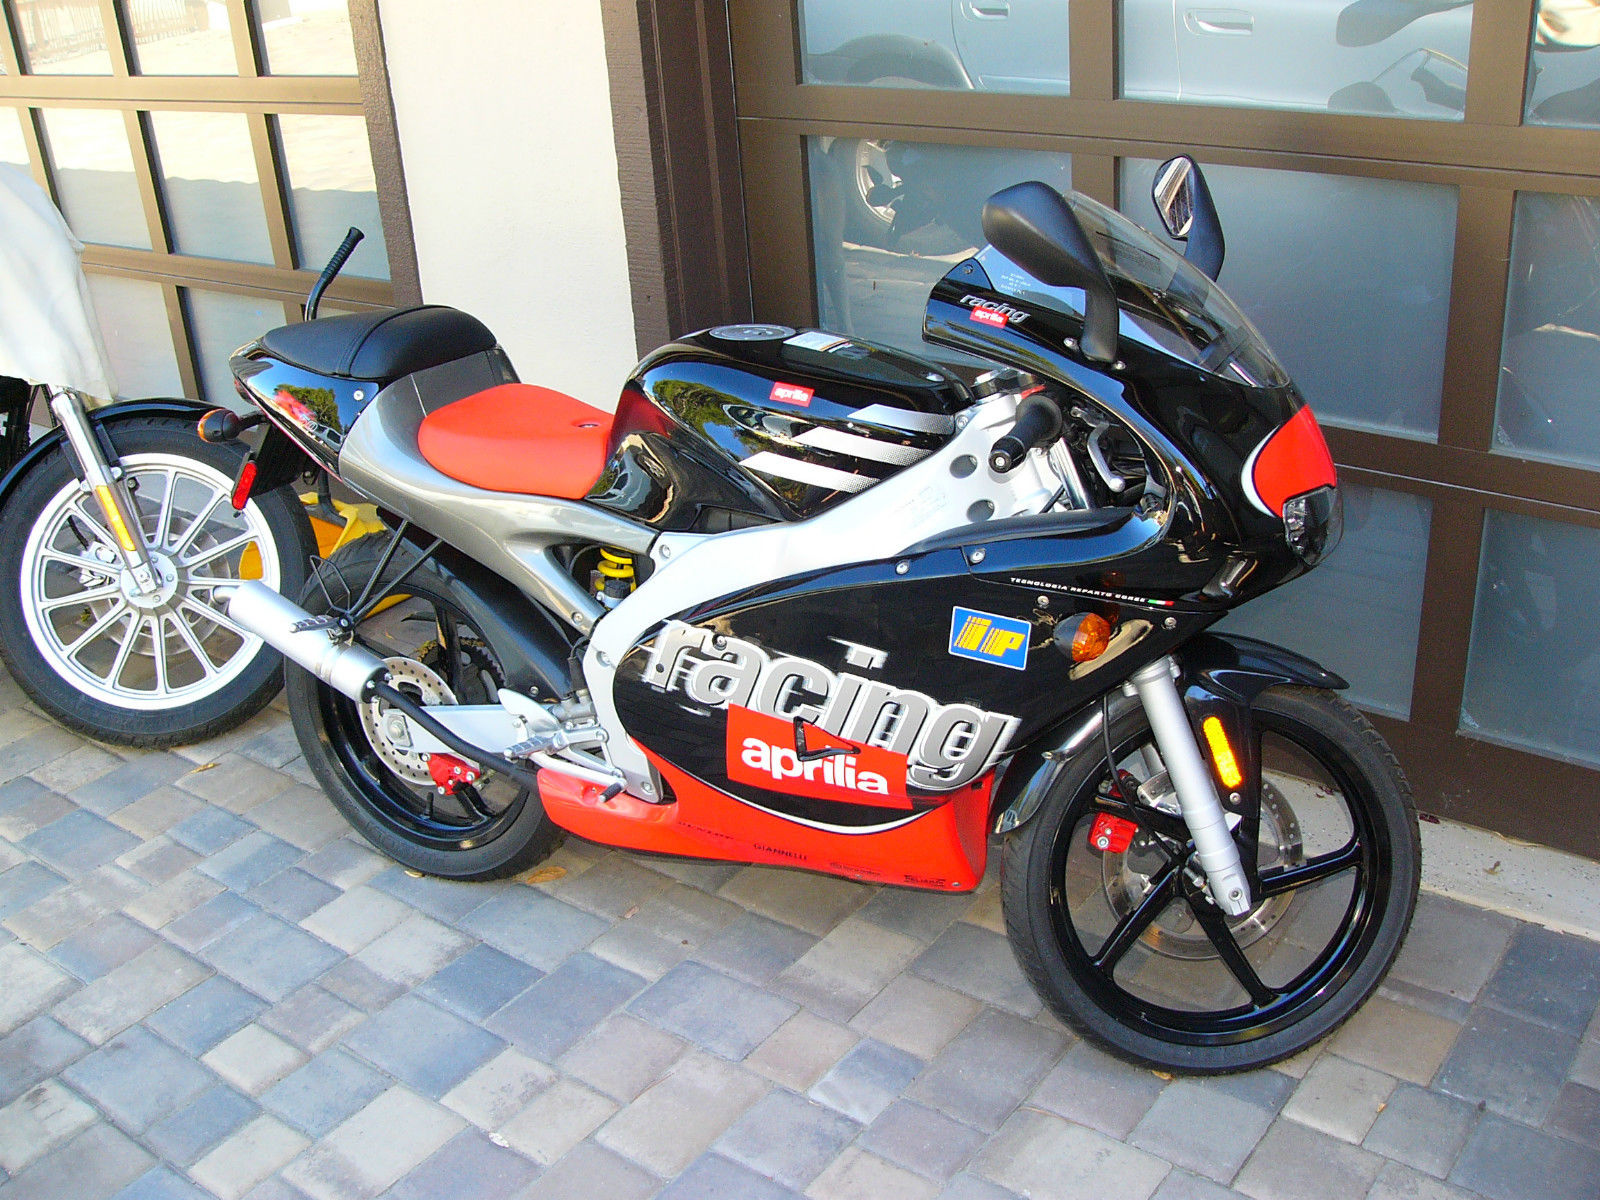 the perfect holiday stocking stuffer 1999 aprilia rs50 for sale rare sportbikes for sale. Black Bedroom Furniture Sets. Home Design Ideas